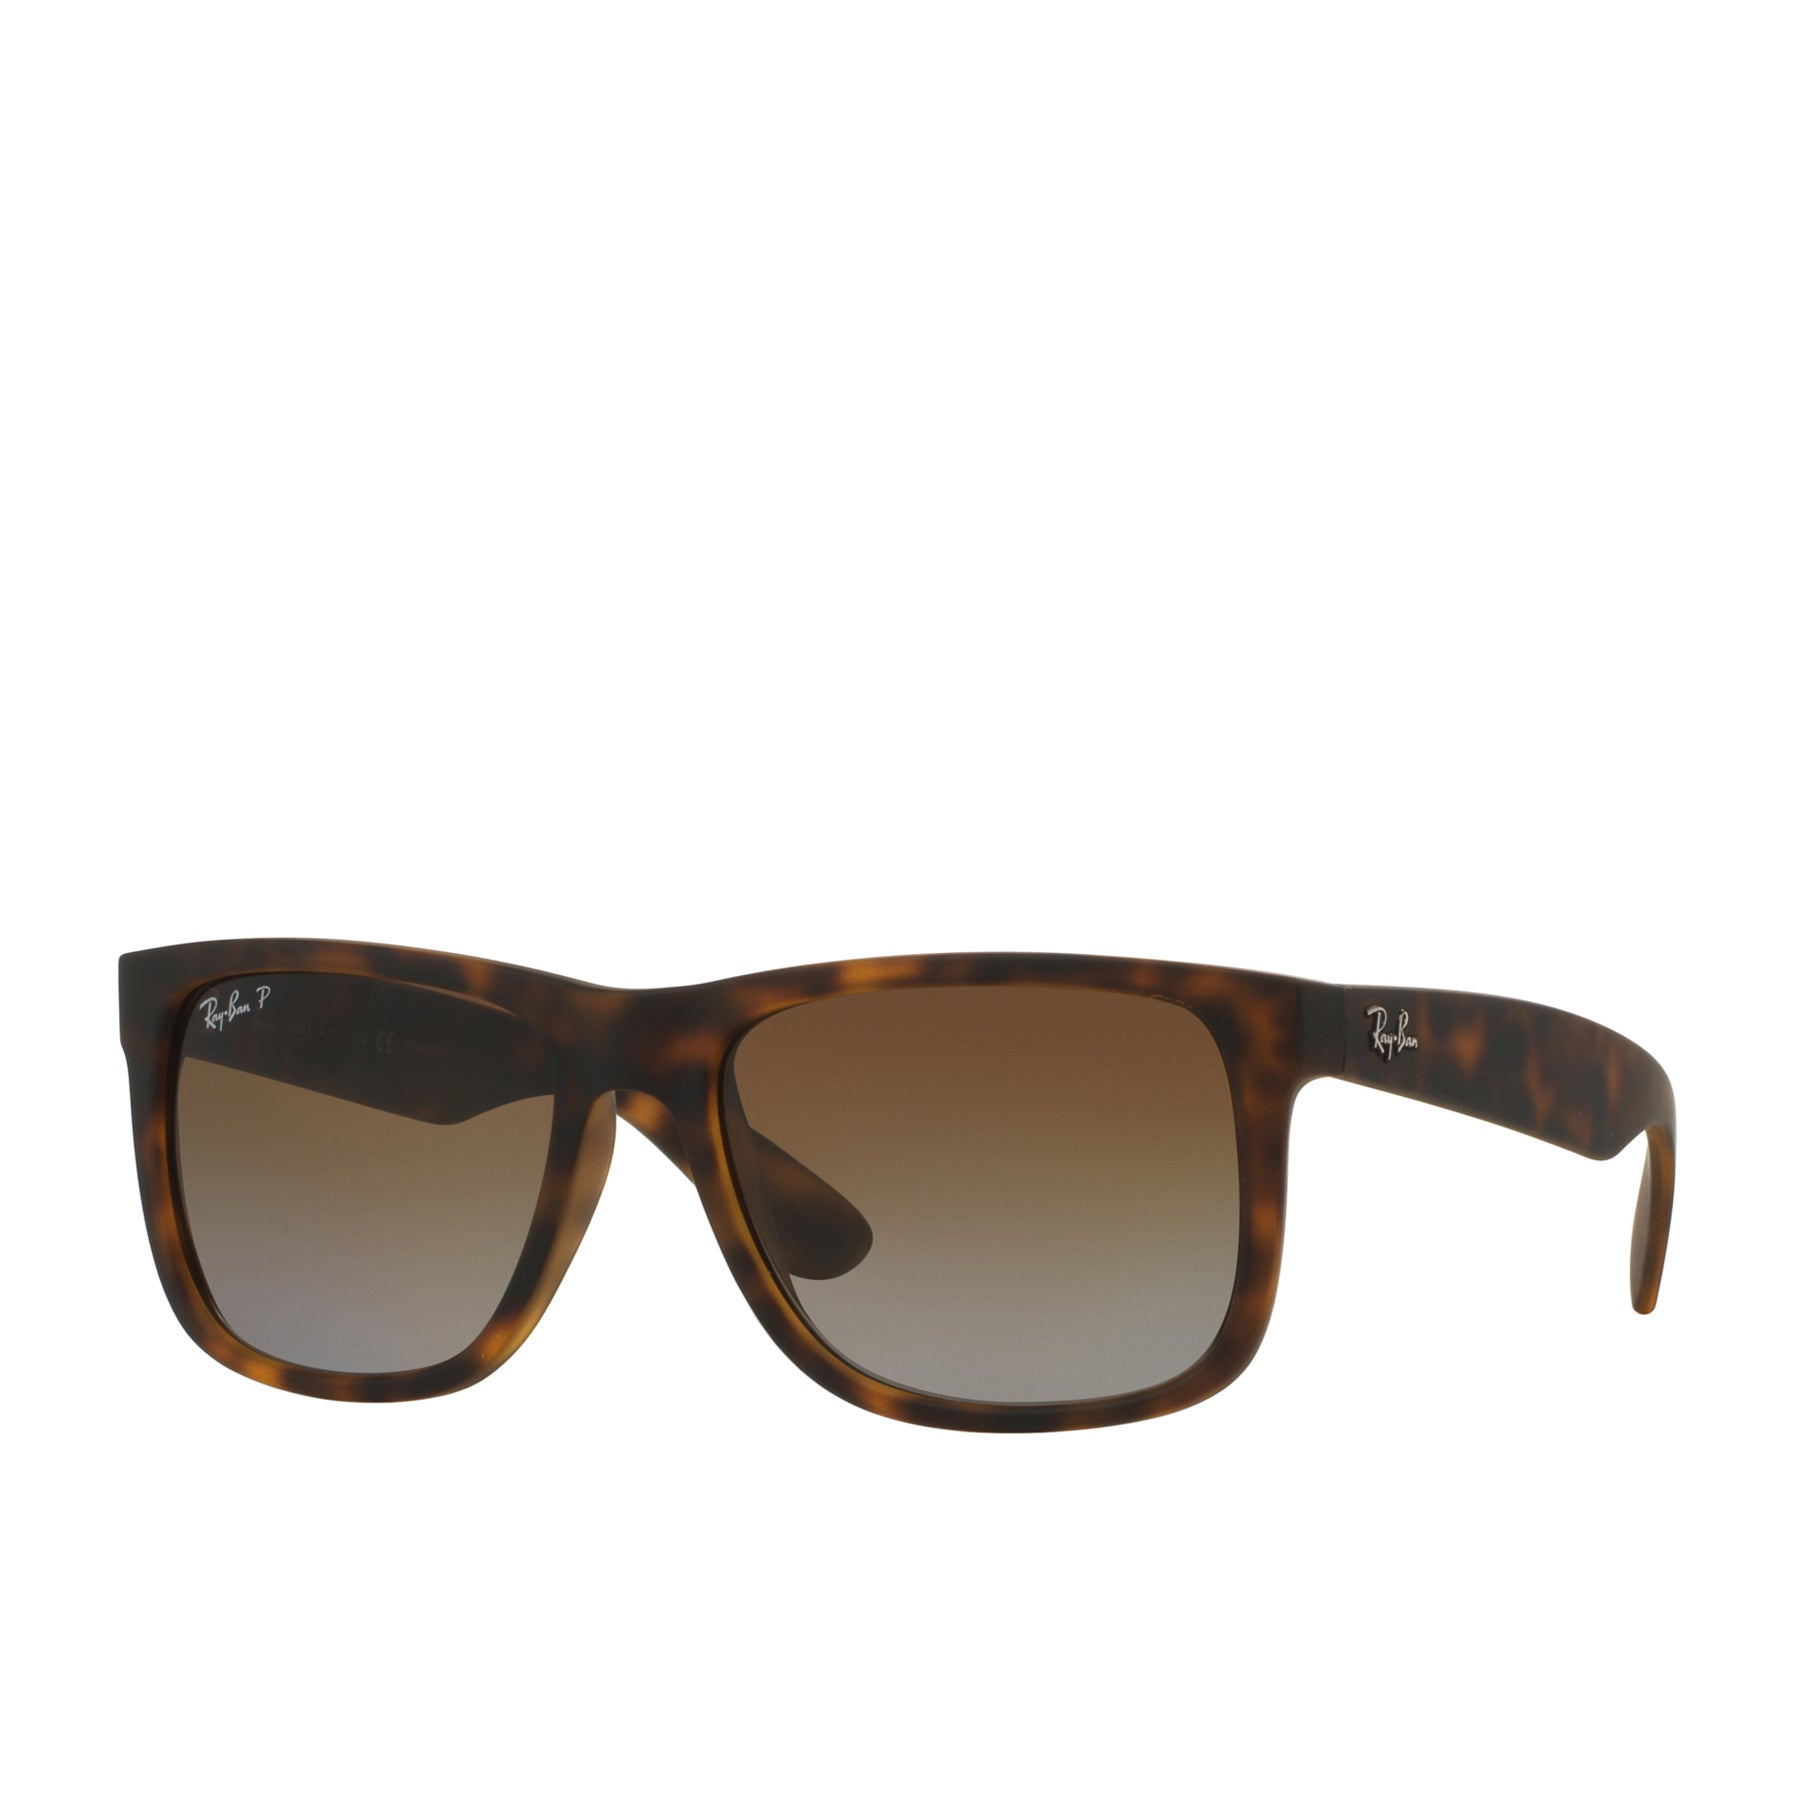 Ray-Ban Justin Sunglasses - Polarised   Havana ~ Brown Gradient